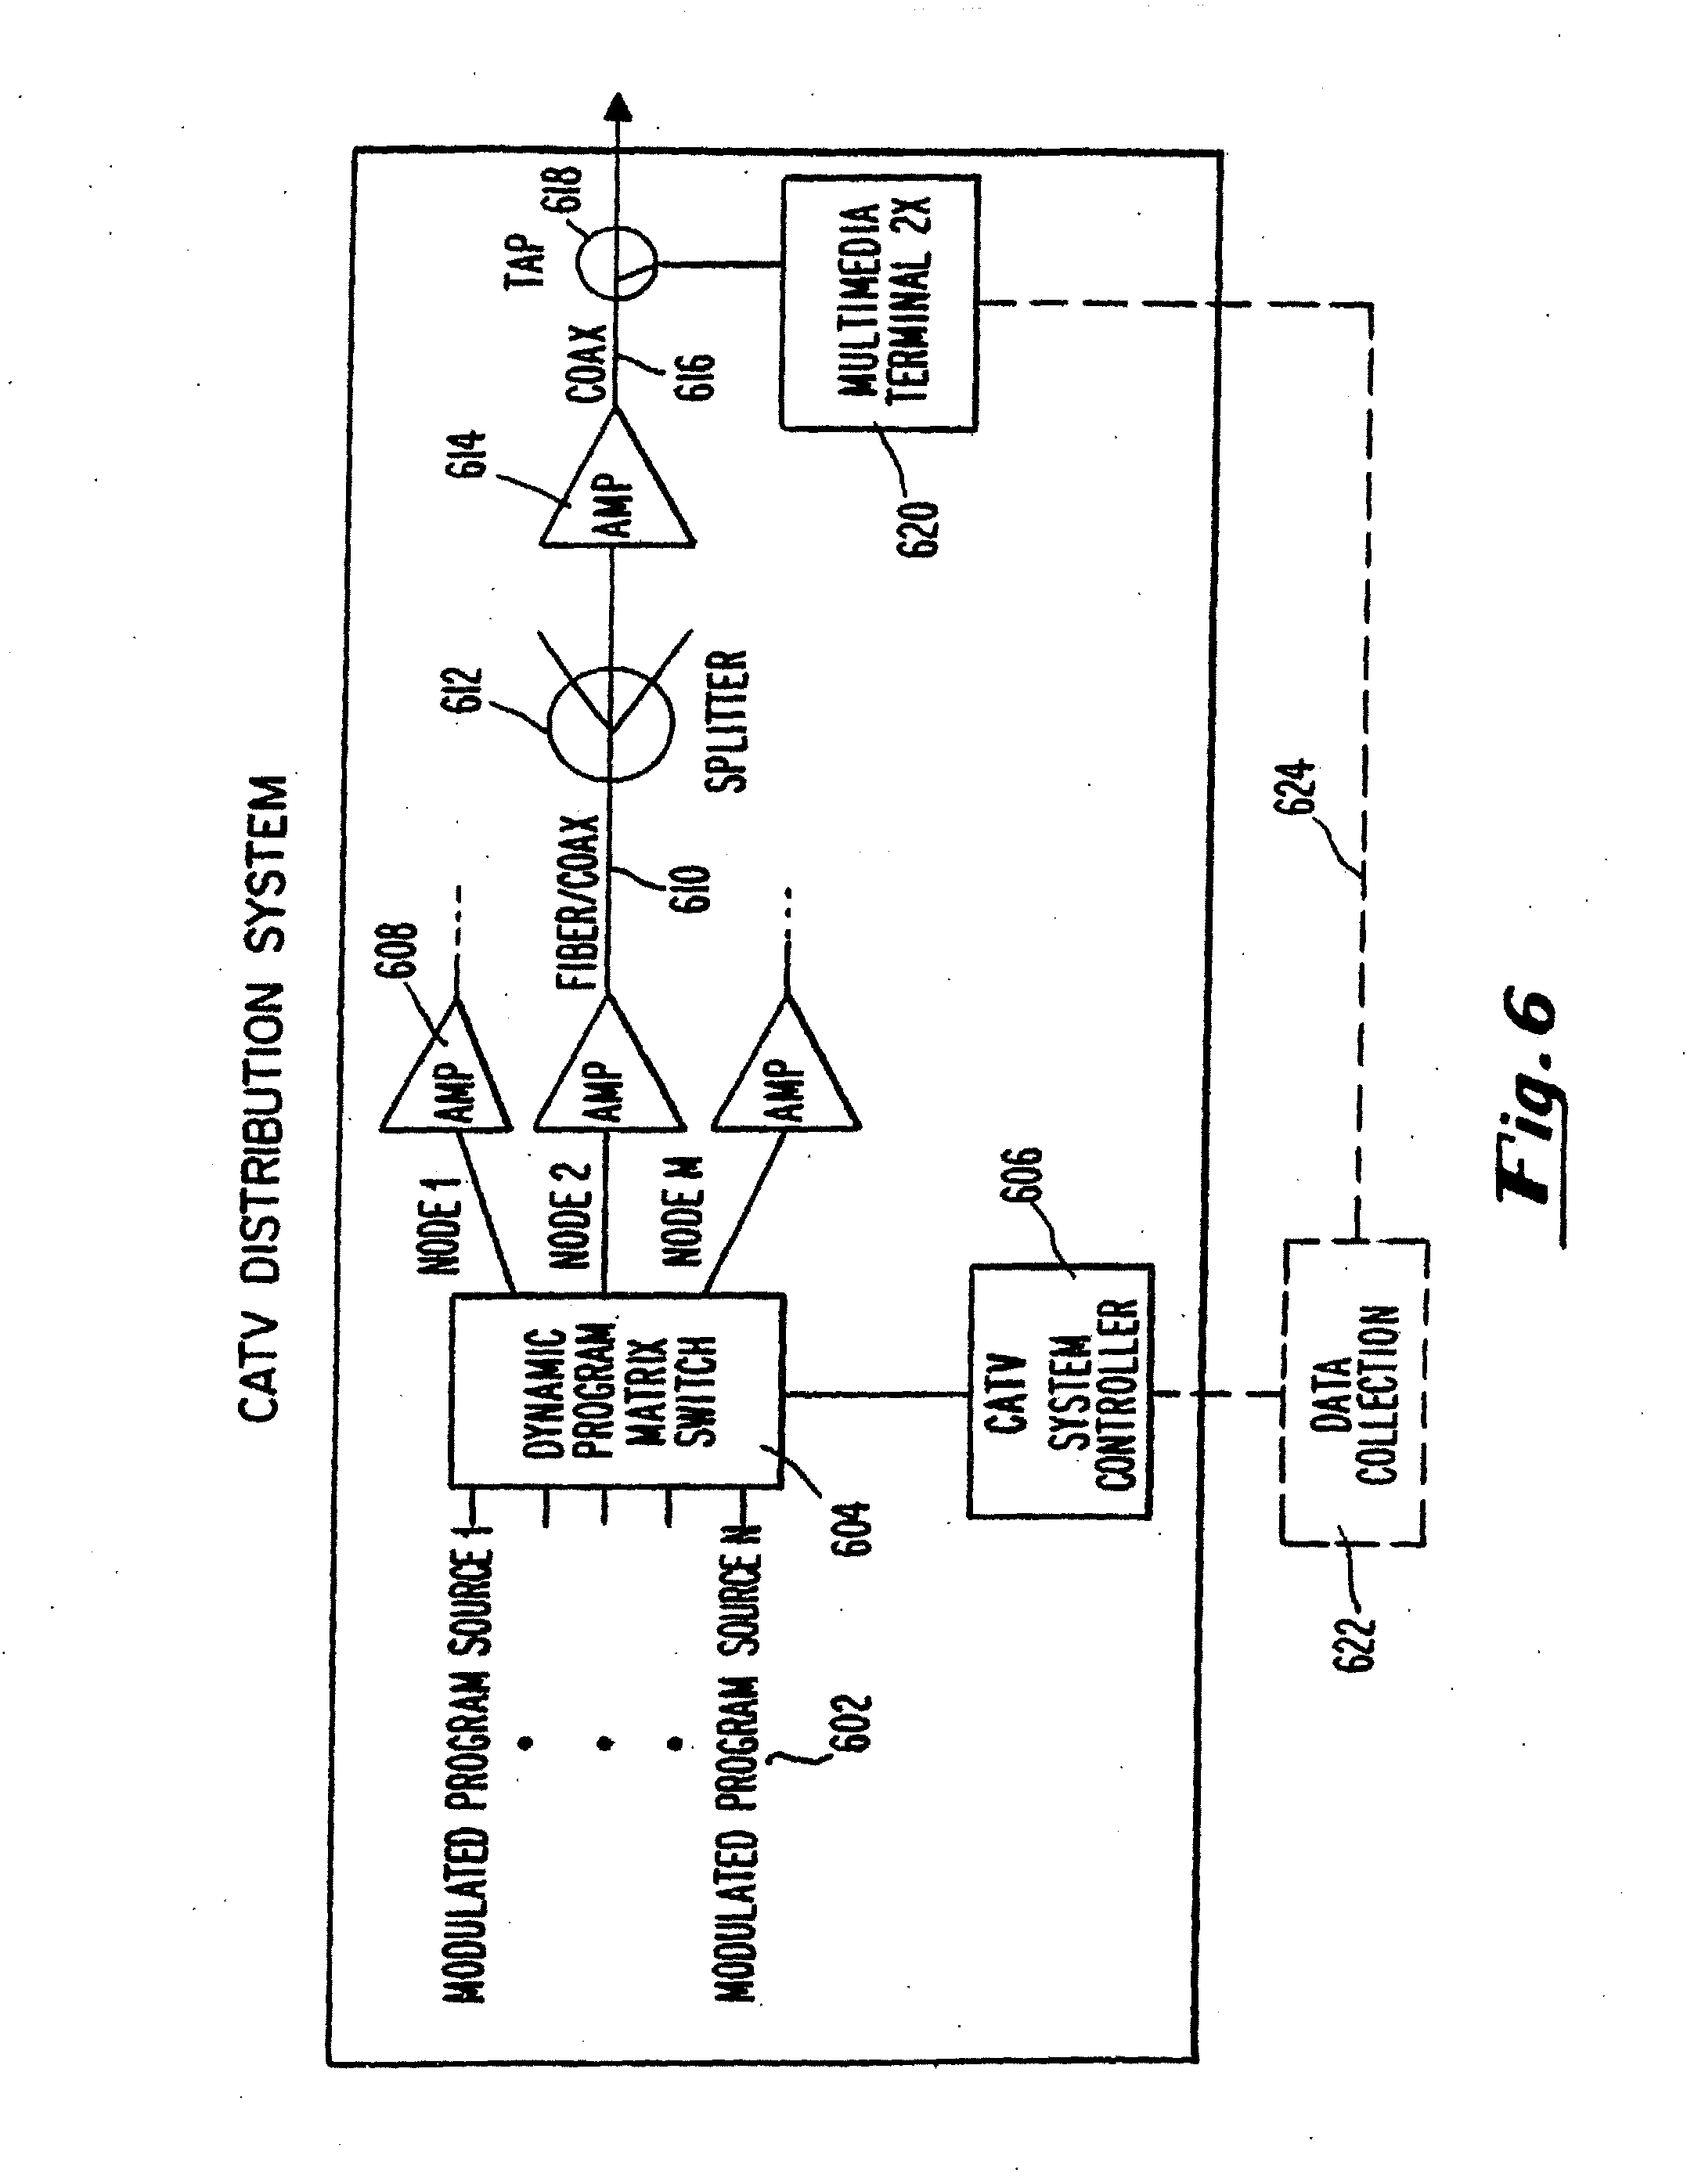 us20120102523a1 system and method for providing access to data rh patents google com